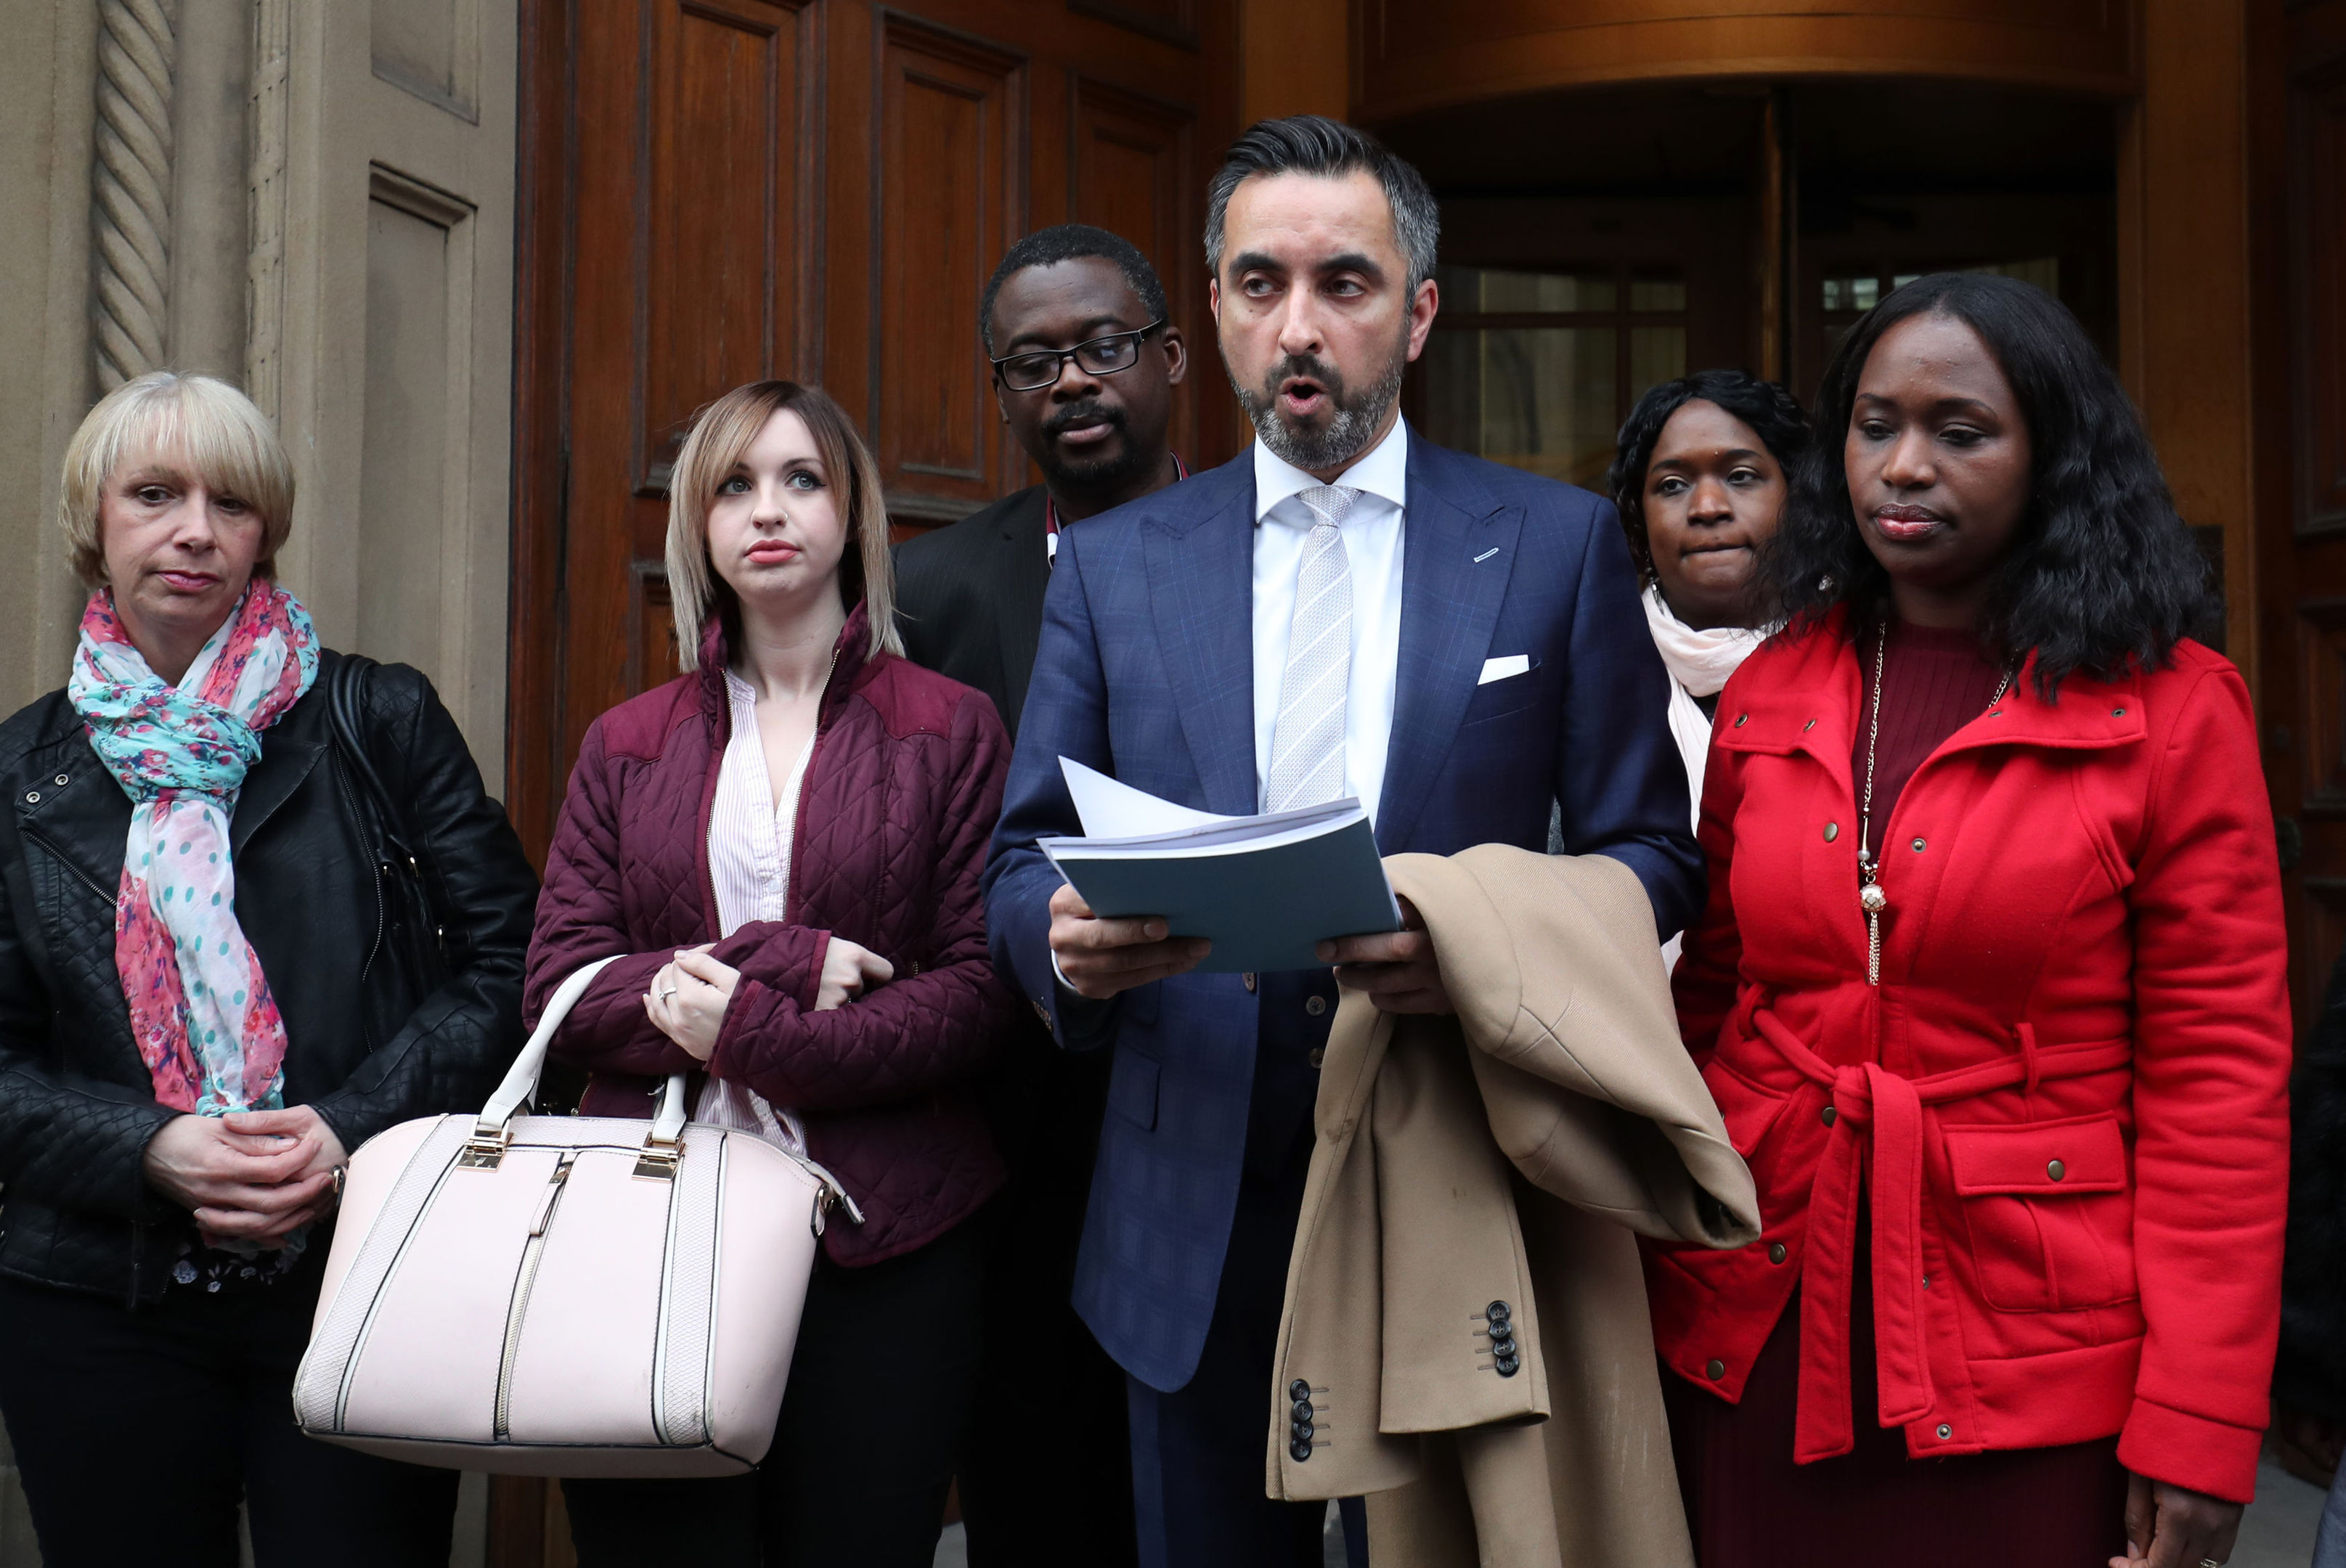 Solicitor Aamer Anwar reads a statement to the media outside the Crown Office in Edinburgh after family members of the late Sheku Bayoh met the Lord Advocate.